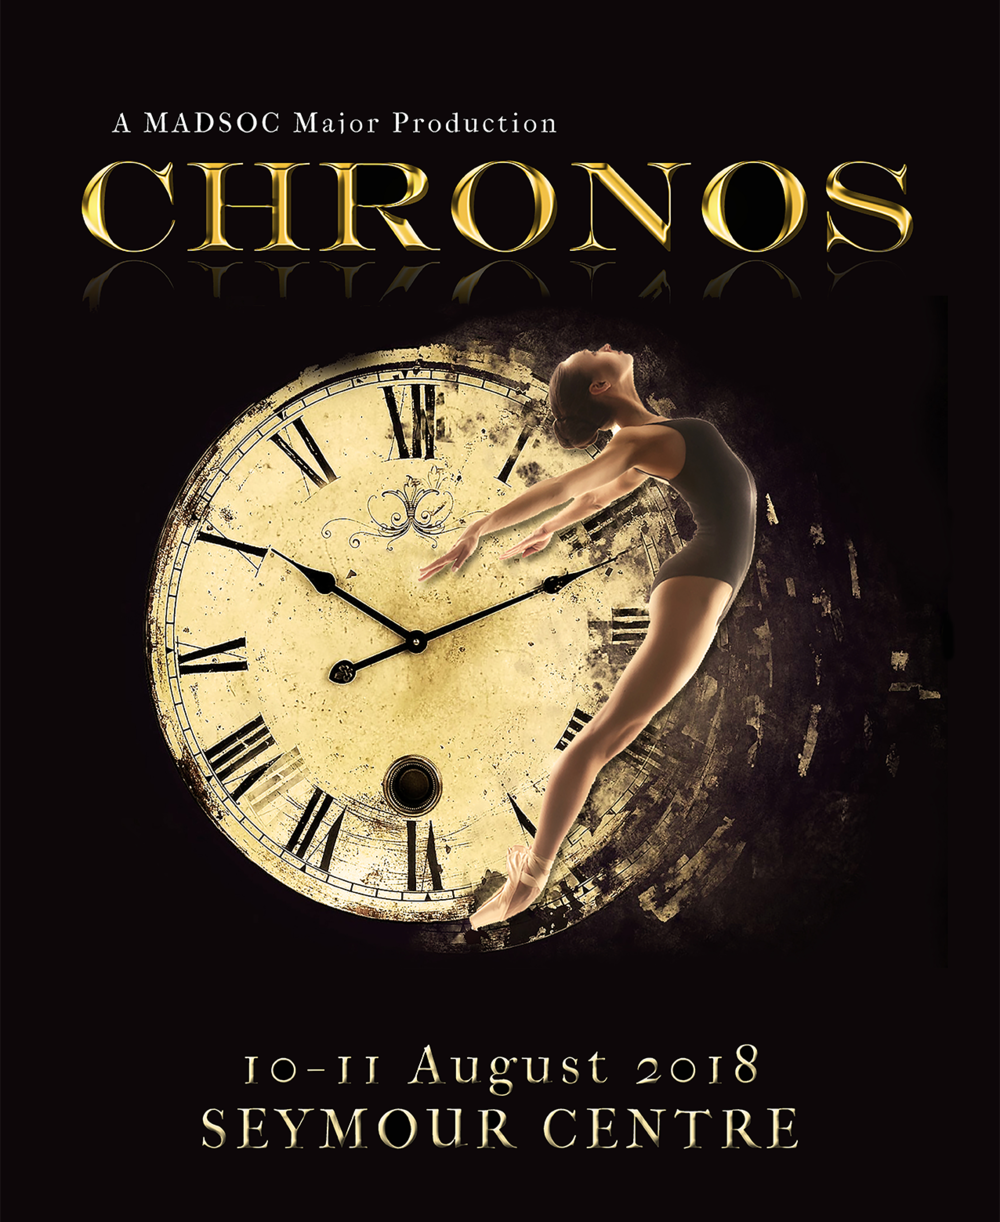 CHRONOS - CHRONOS is an exploration of time. But what is time? Time is infinite but fleeting, constant but unpredictable; it is irretrievable but must be captured. In essence, time is a complex concept and impossible to define. CHRONOS seeks to grapple with the many different facets of time and how humans interact with these through a myriad of dance styles. From ageing to tempo, time perception to nostalgia, each and every second promises to captivate and inspire.Director: Sumire AntonioliProducer: Tina Wu